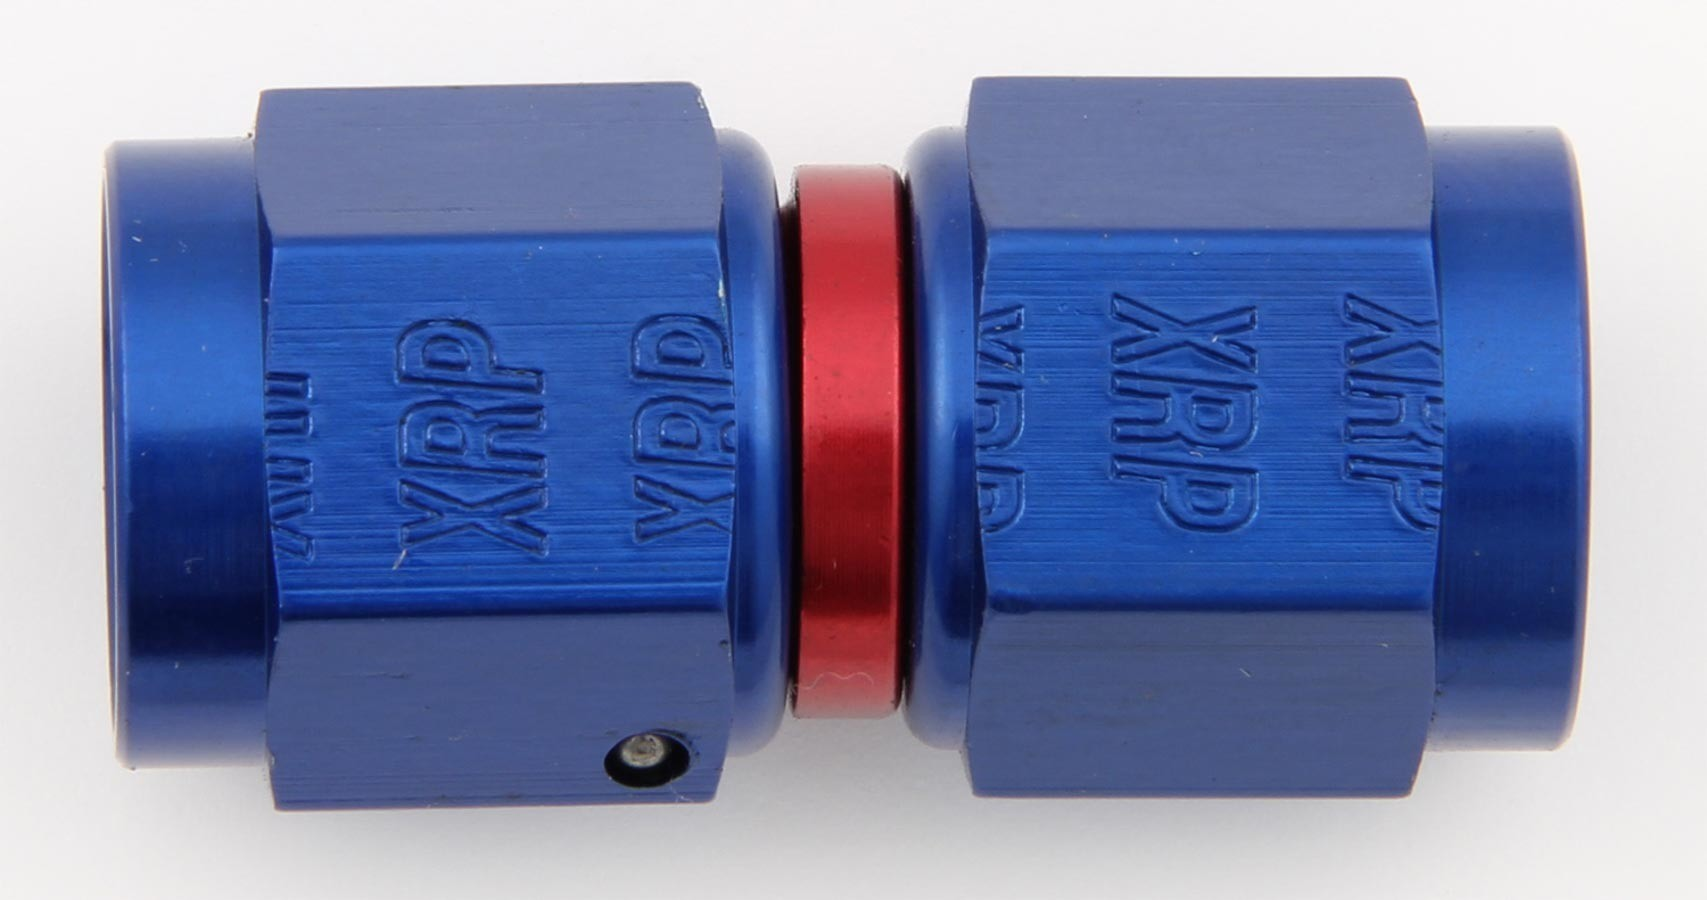 XRP 900104 Fitting, Adapter, Straight, 4 AN Female Swivel to 4 AN Female Swivel, Aluminum, Blue / Red Anodize, Each